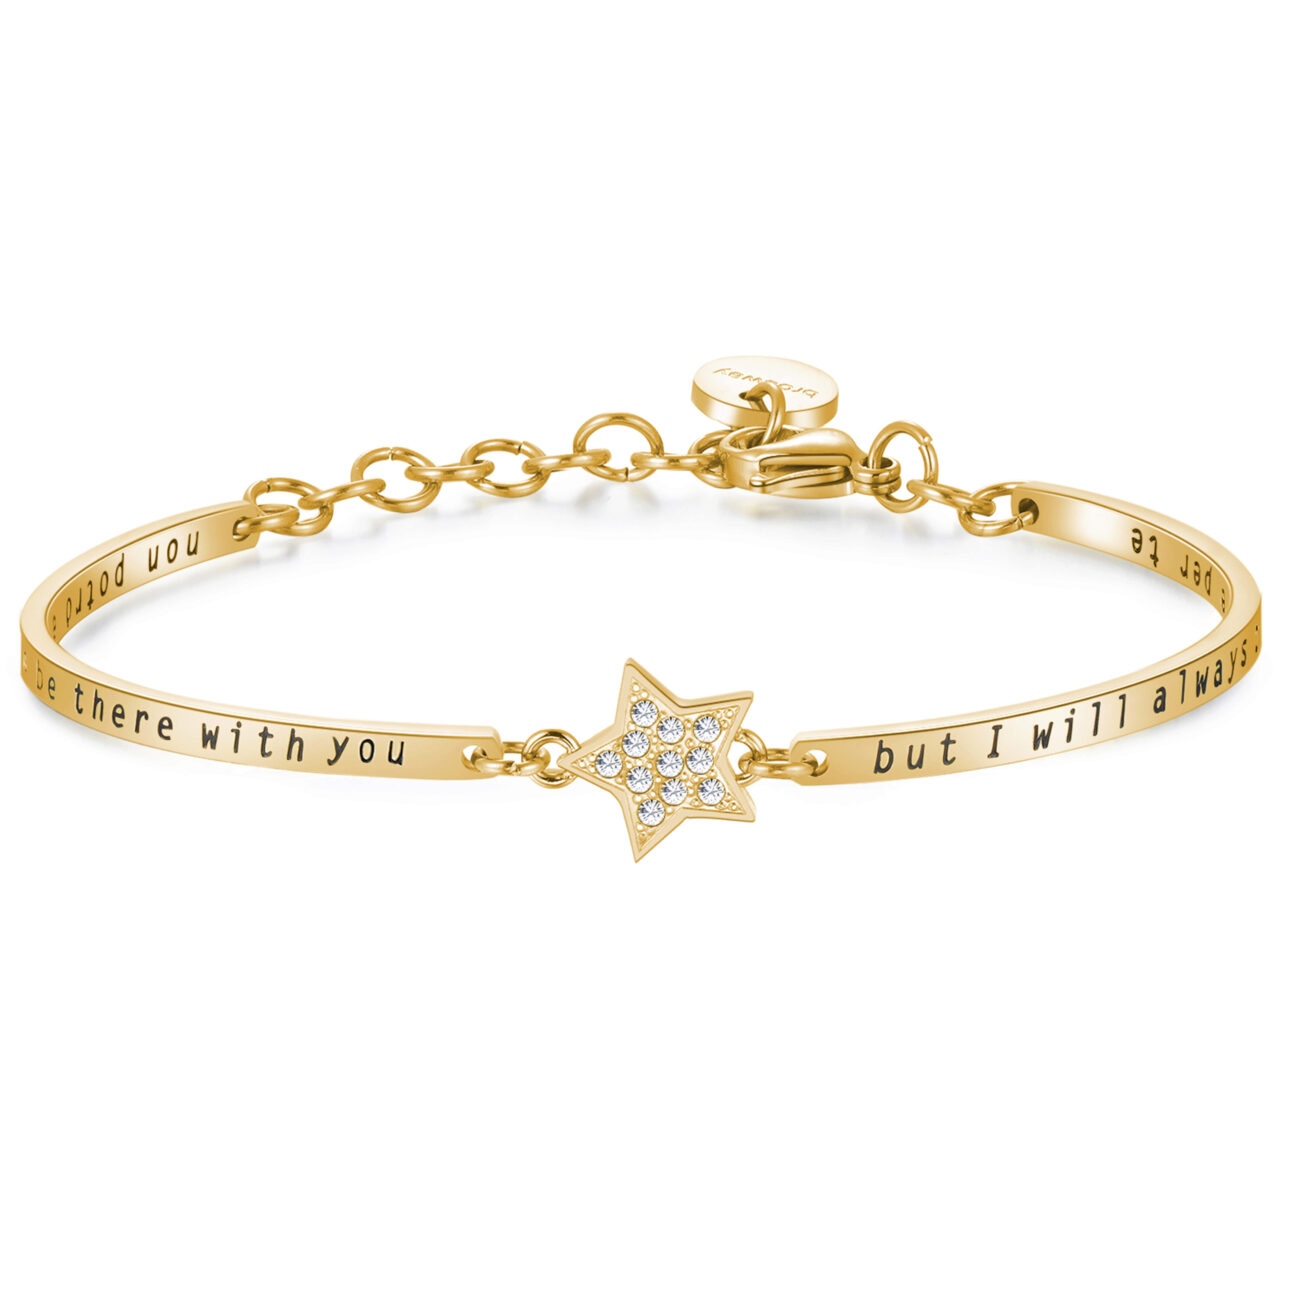 STARS: FRIENDSHIP, EMPATHY, HAPPINESSENGRAVED:I may not always be there with you but i will always be there for you (front) - Non potrò essere sempre con te, ma ci sarò sempre per te (back)They understand without you saying a word, are always on your side and make you laugh even when you don't want to. True friends shine like the stars.316L stainless steel bracelet with central star, gold PVD and Swarovski® Elements crystals.